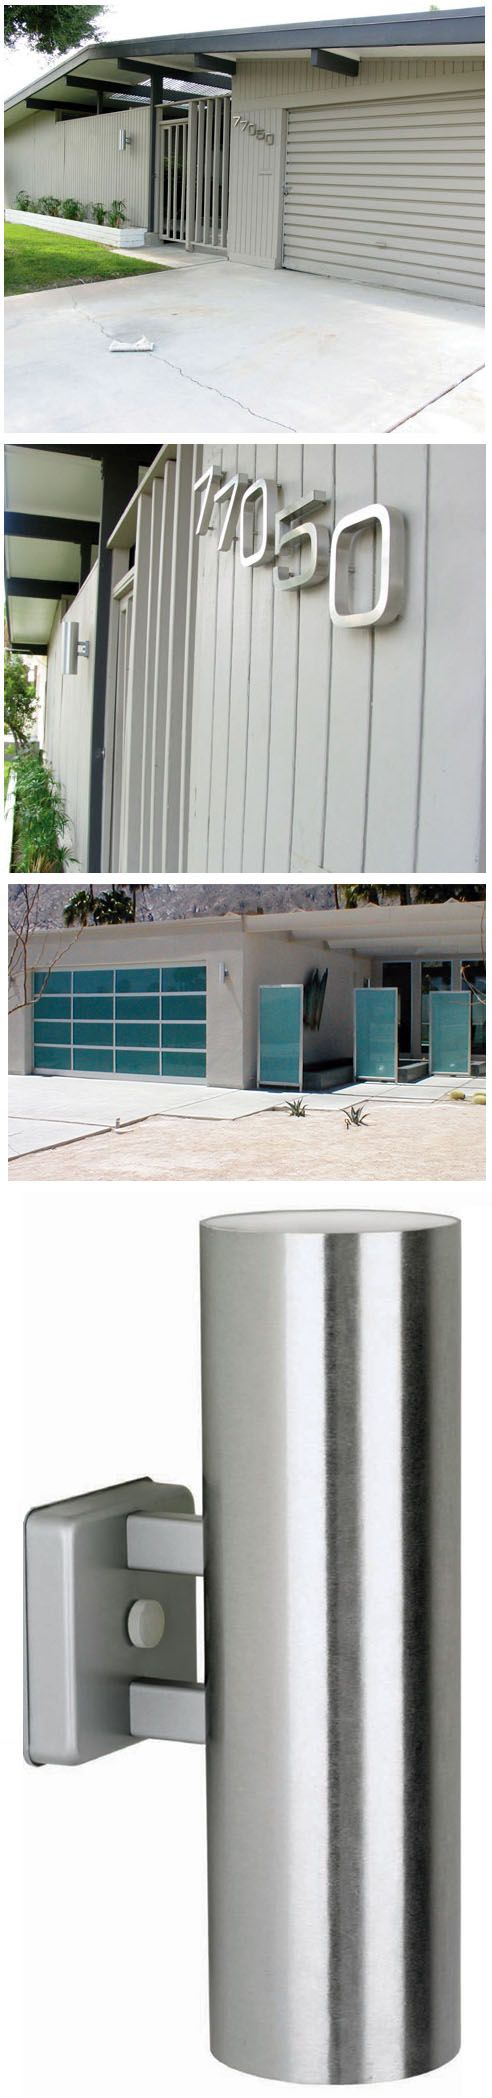 Mid Century Modern Outdoor Wall Sconces : Case Study Sconce with Dual Lighting - Modern Outdoor Wall Sconces Mid century, Patio and Design